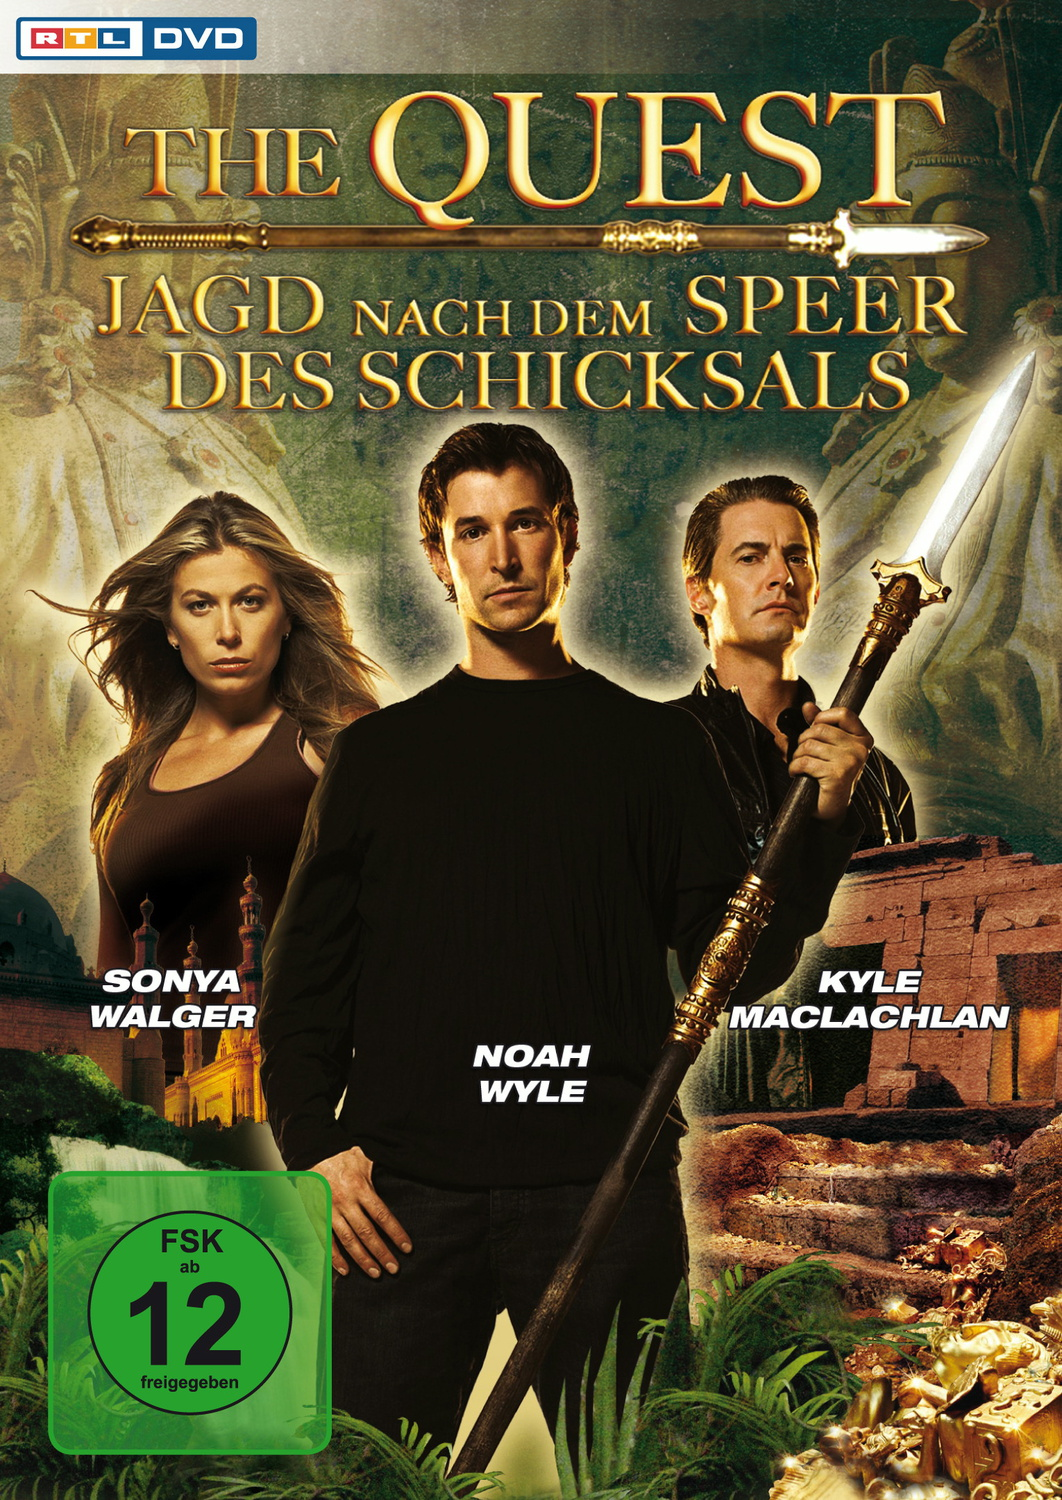 The Quest Jagd Nach Dem Speer Des Schicksals Ganzer Film Deutsch